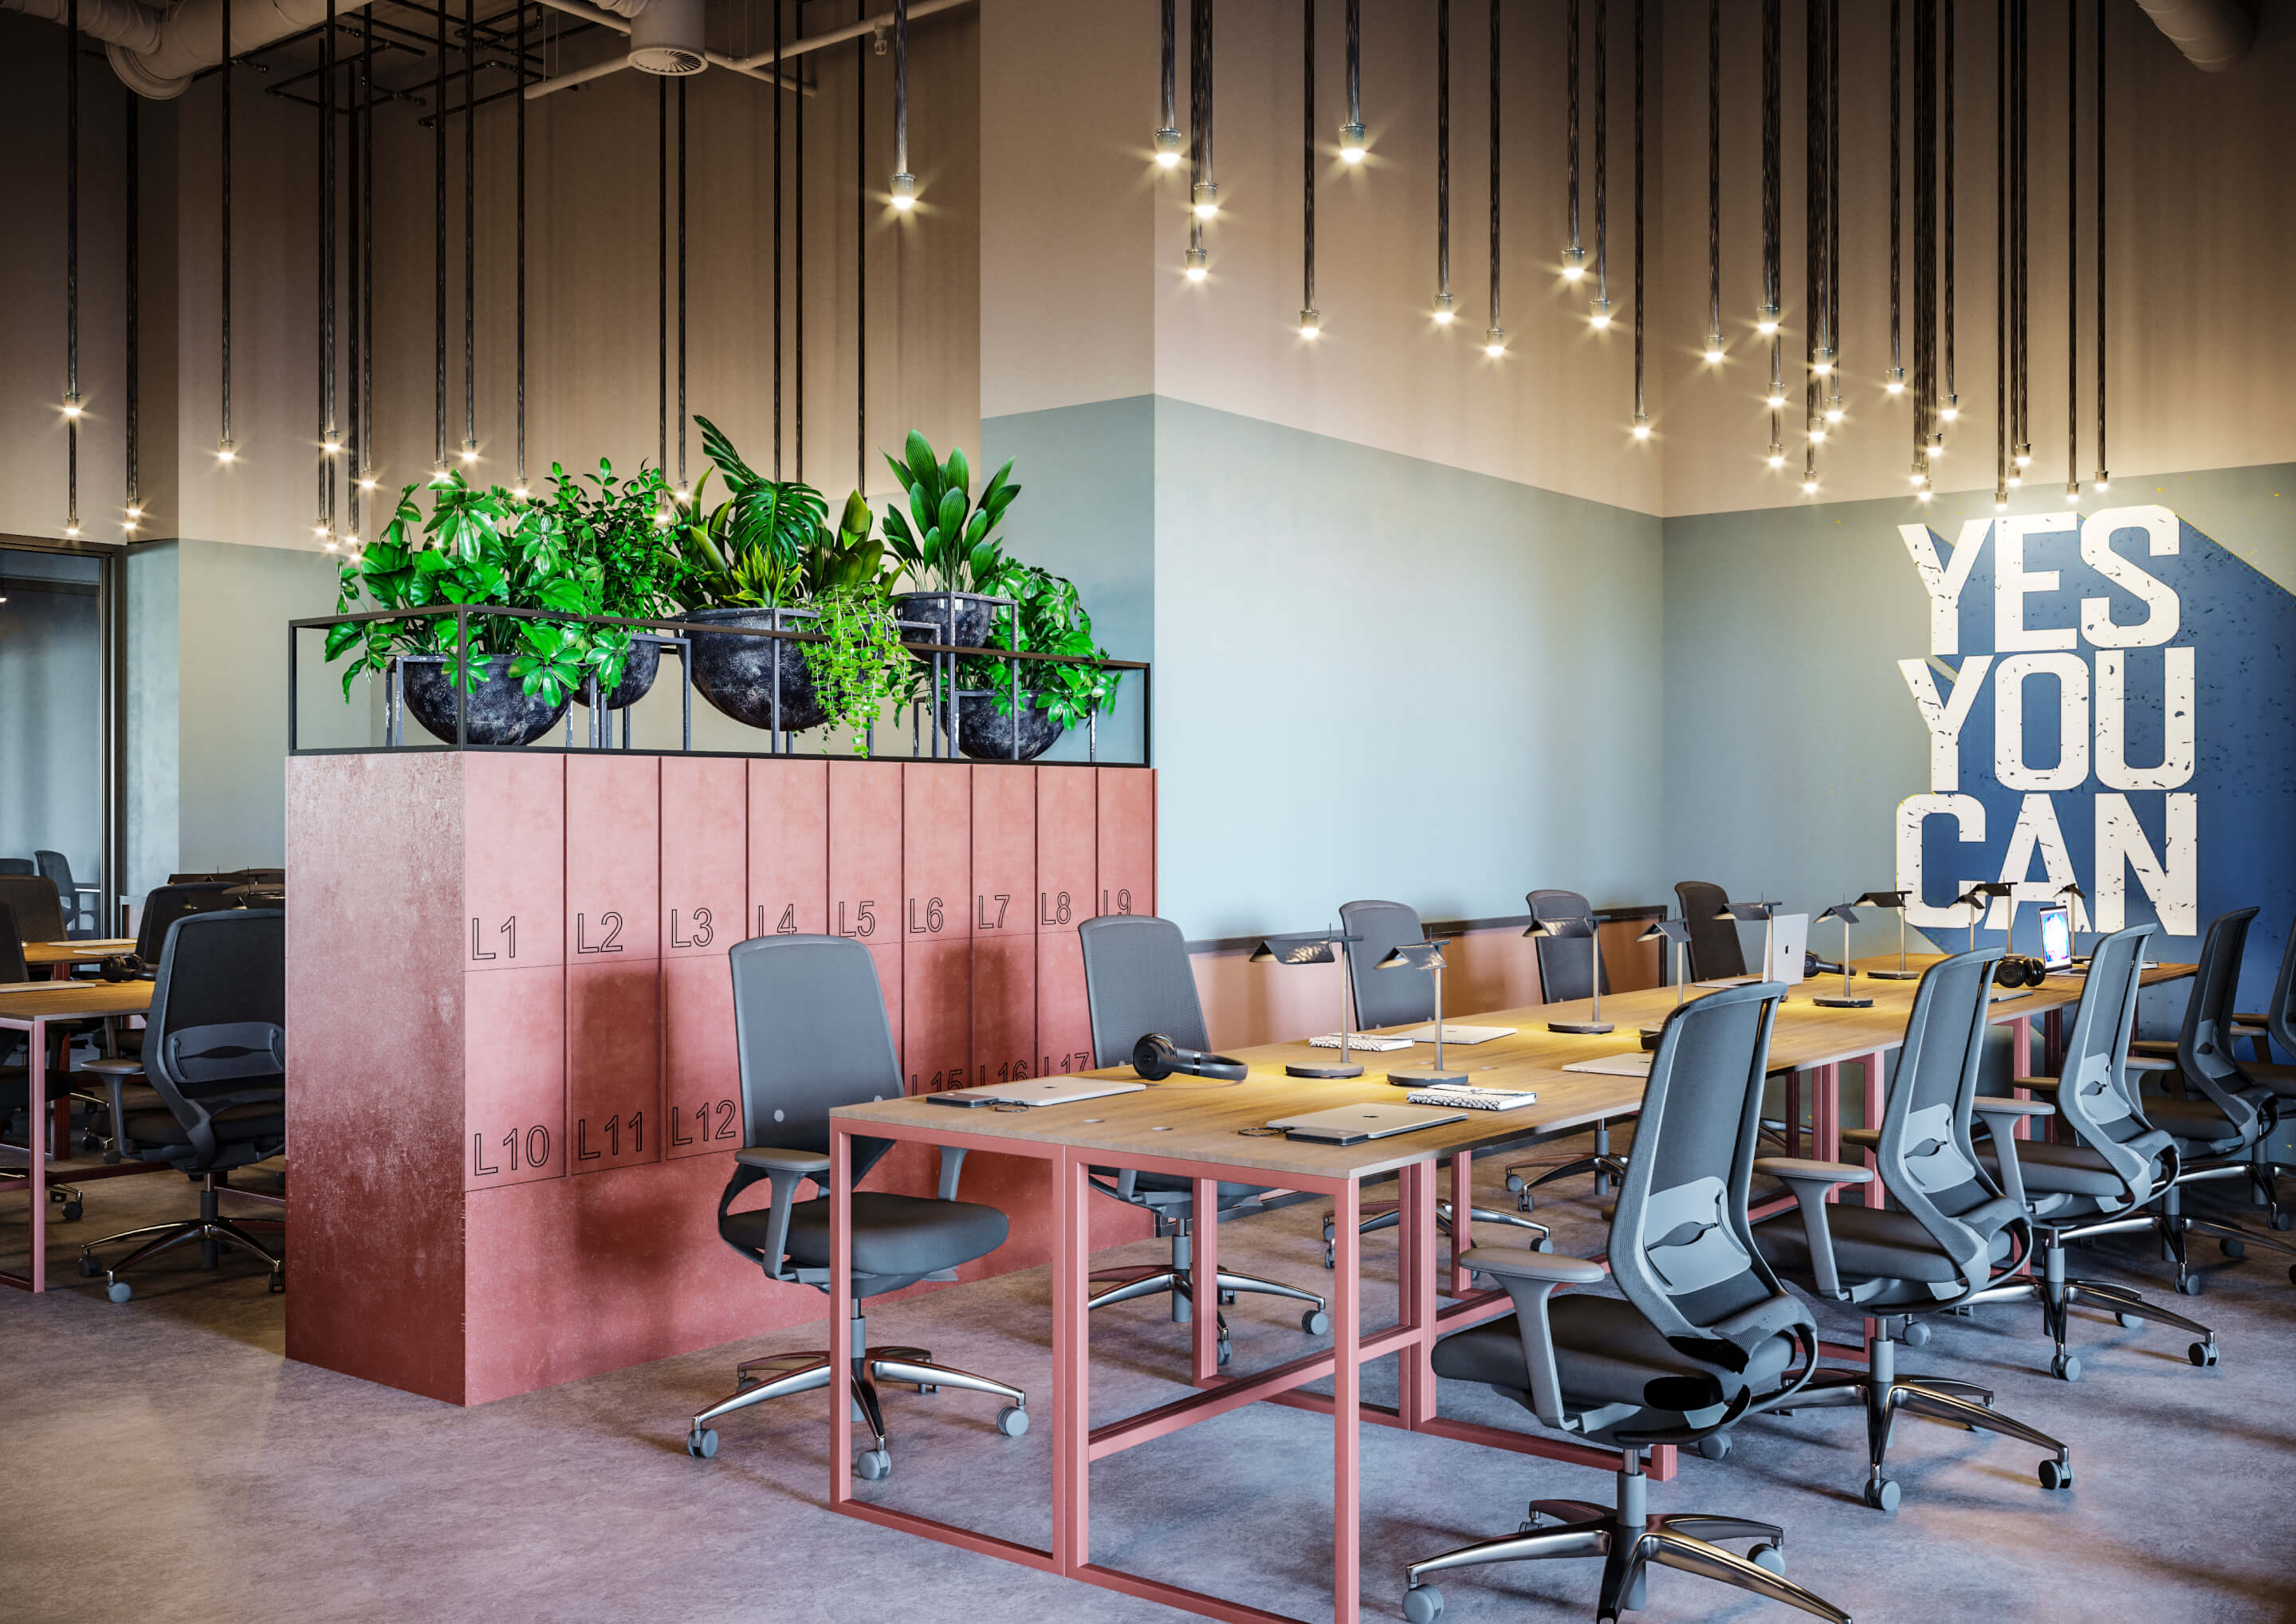 Strengthening the benefits of the co-working space through design 9